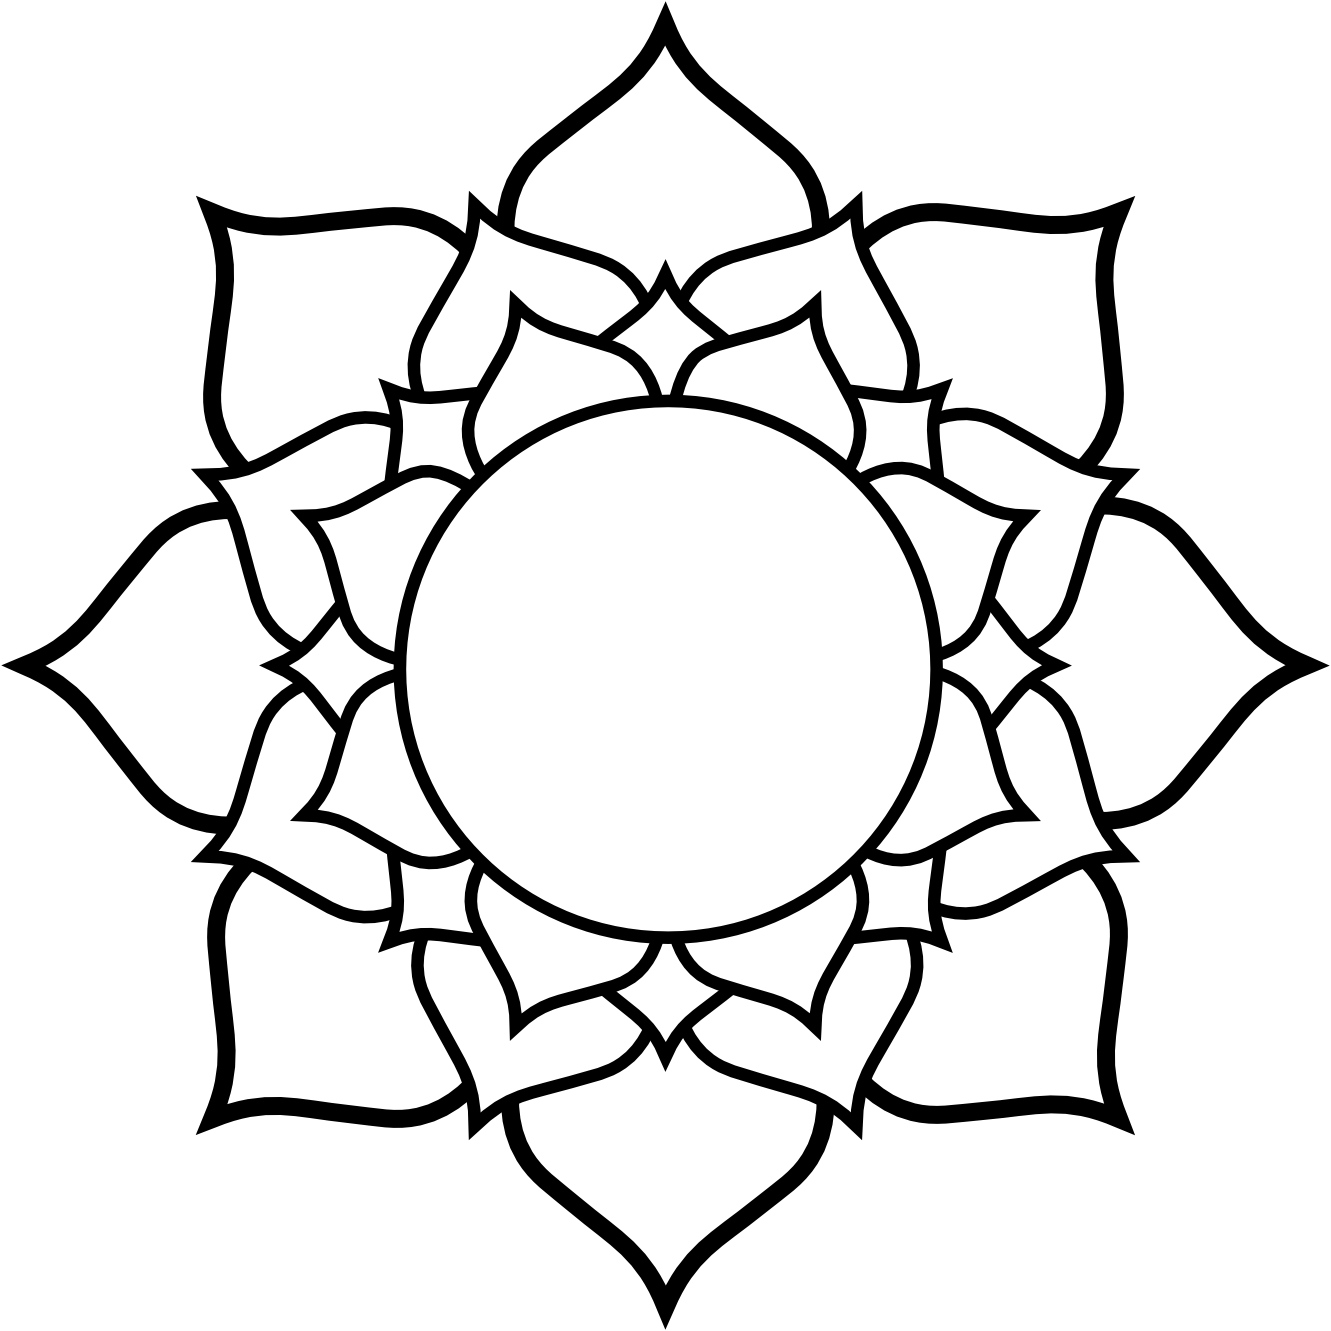 1331x1331 Lotus Flower Tattoo Drawing Pictures And Cliparts, Download Free